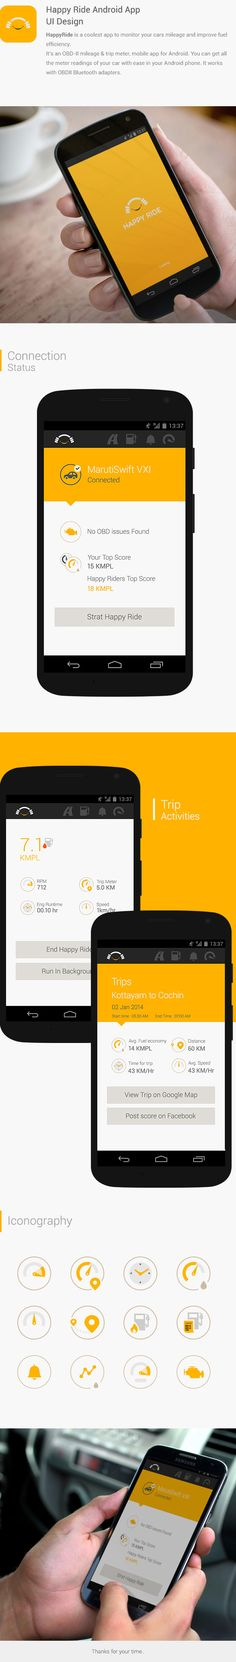 Happy Ride - Android App by vijilal tharaniyil, via Behance